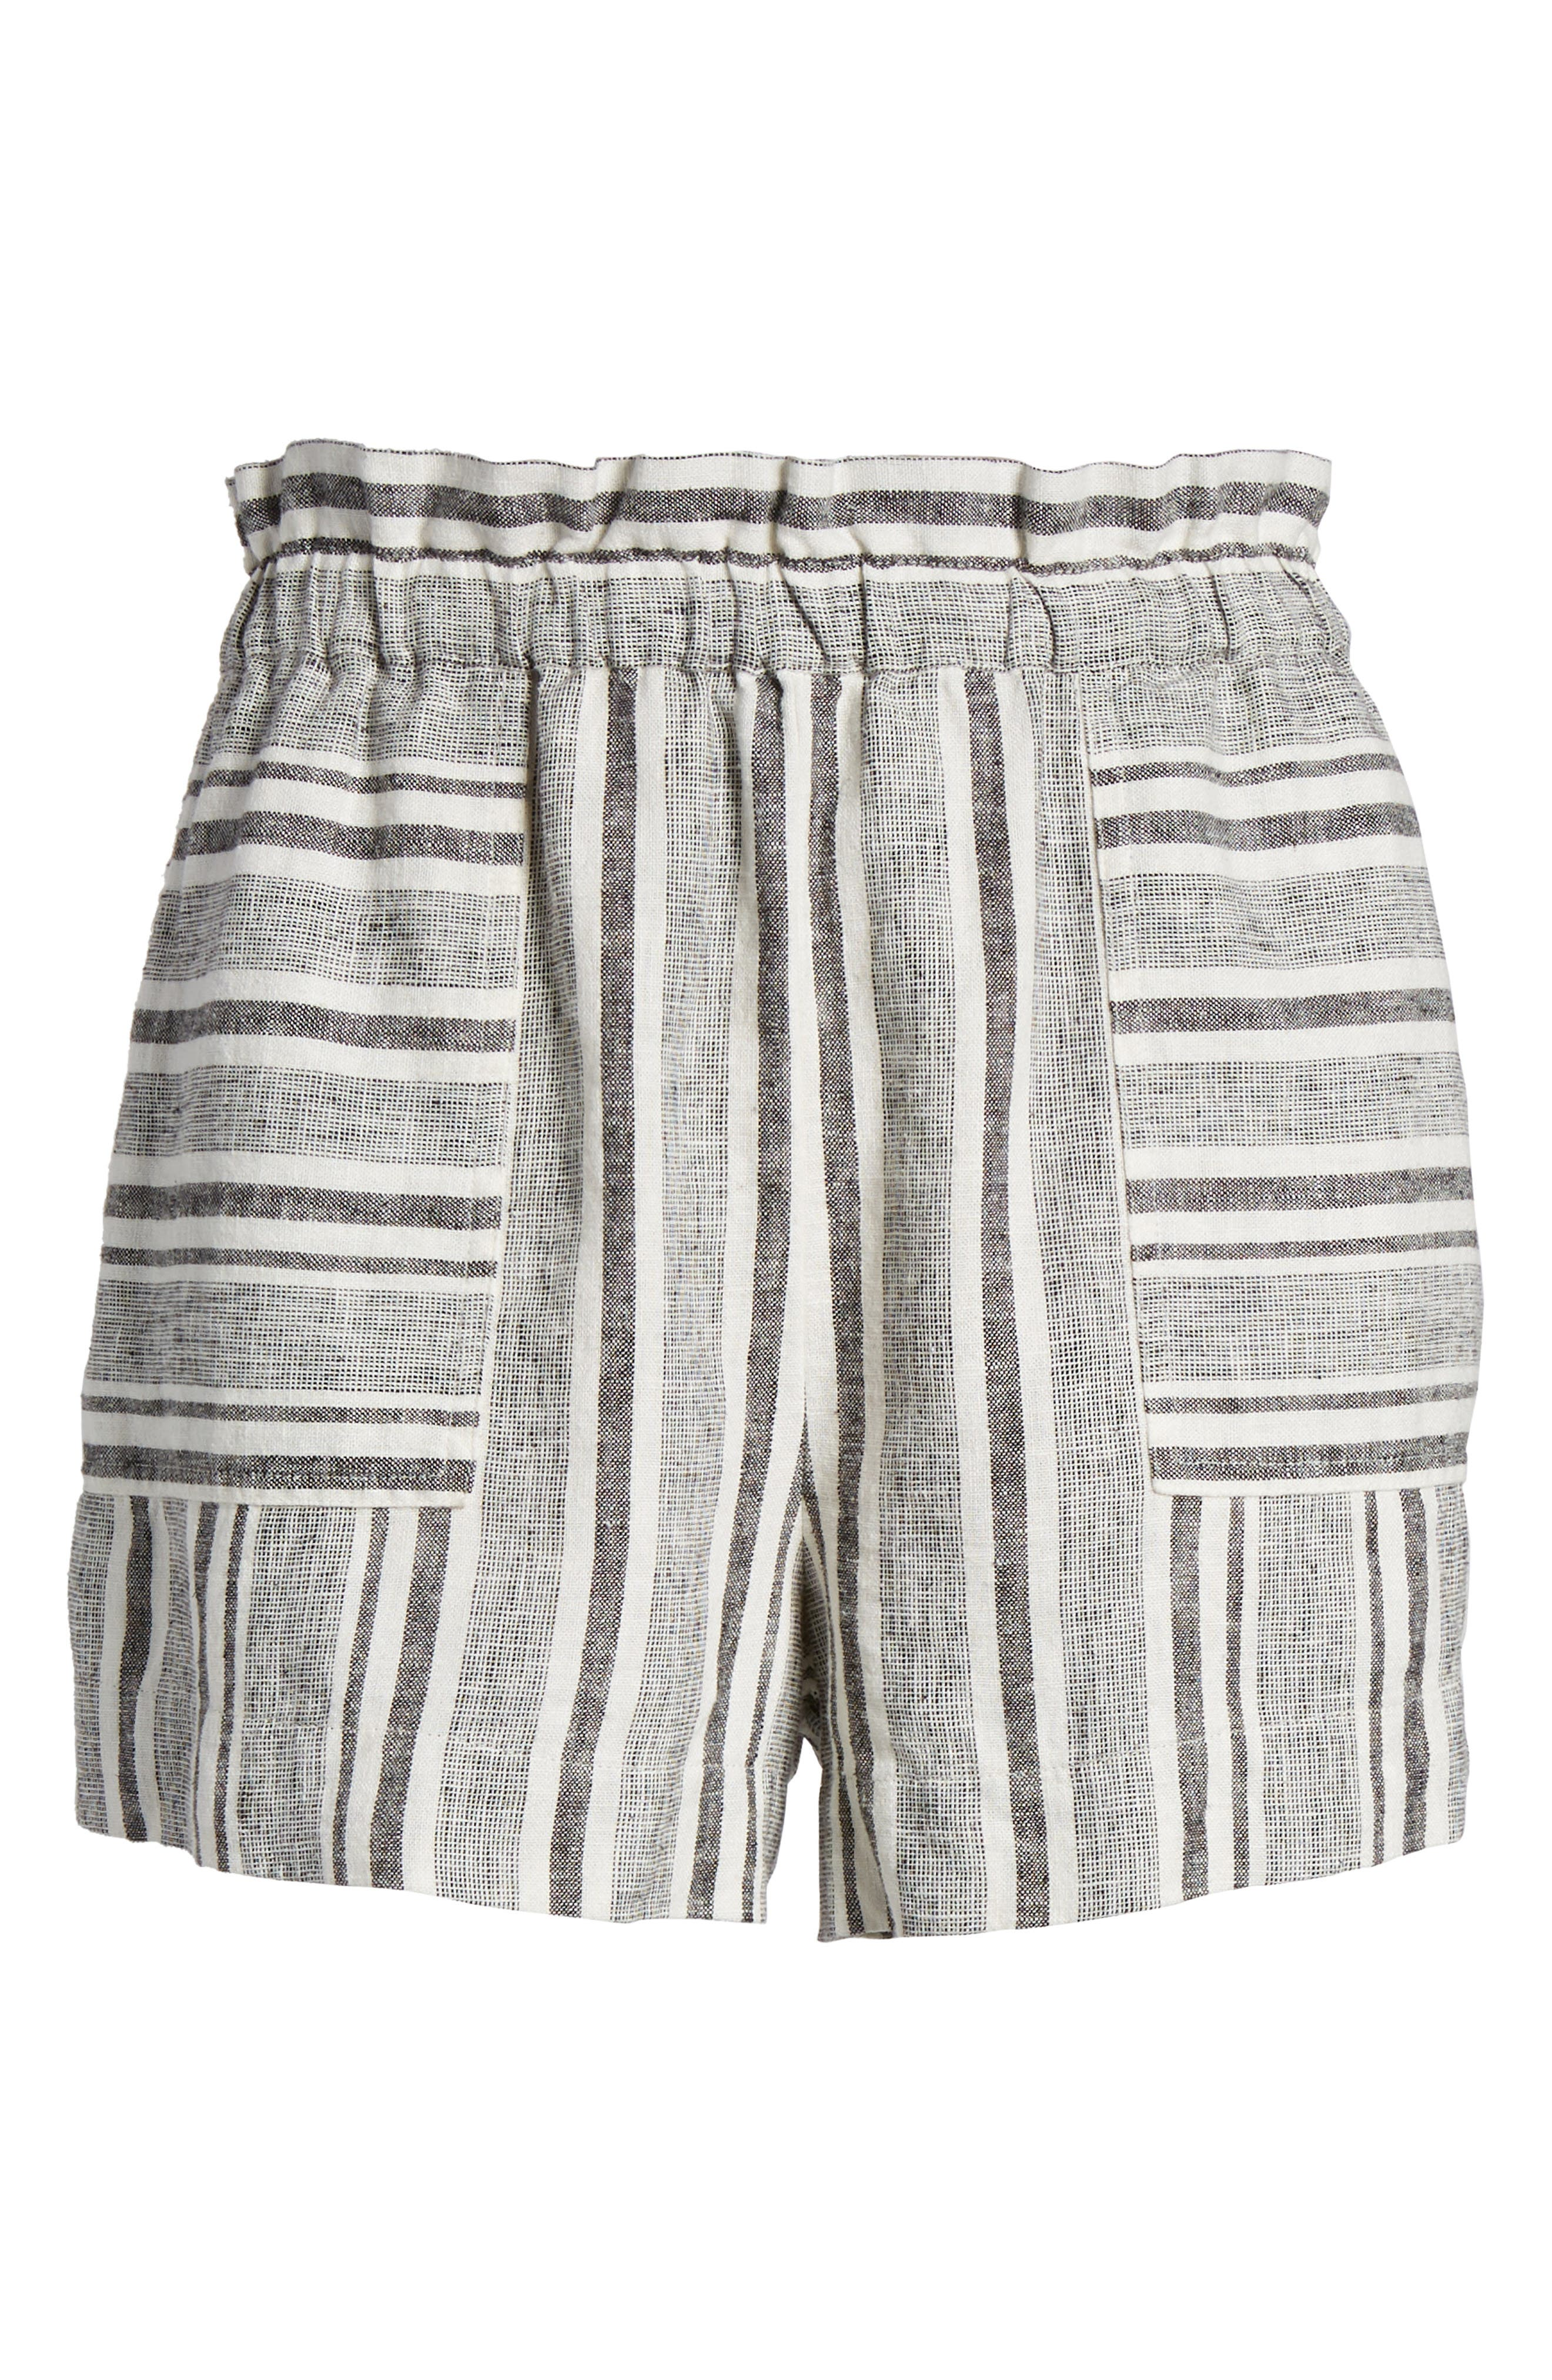 Stripe Linen Blend Shorts,                             Alternate thumbnail 6, color,                             BLACK VIOLA STRIPE